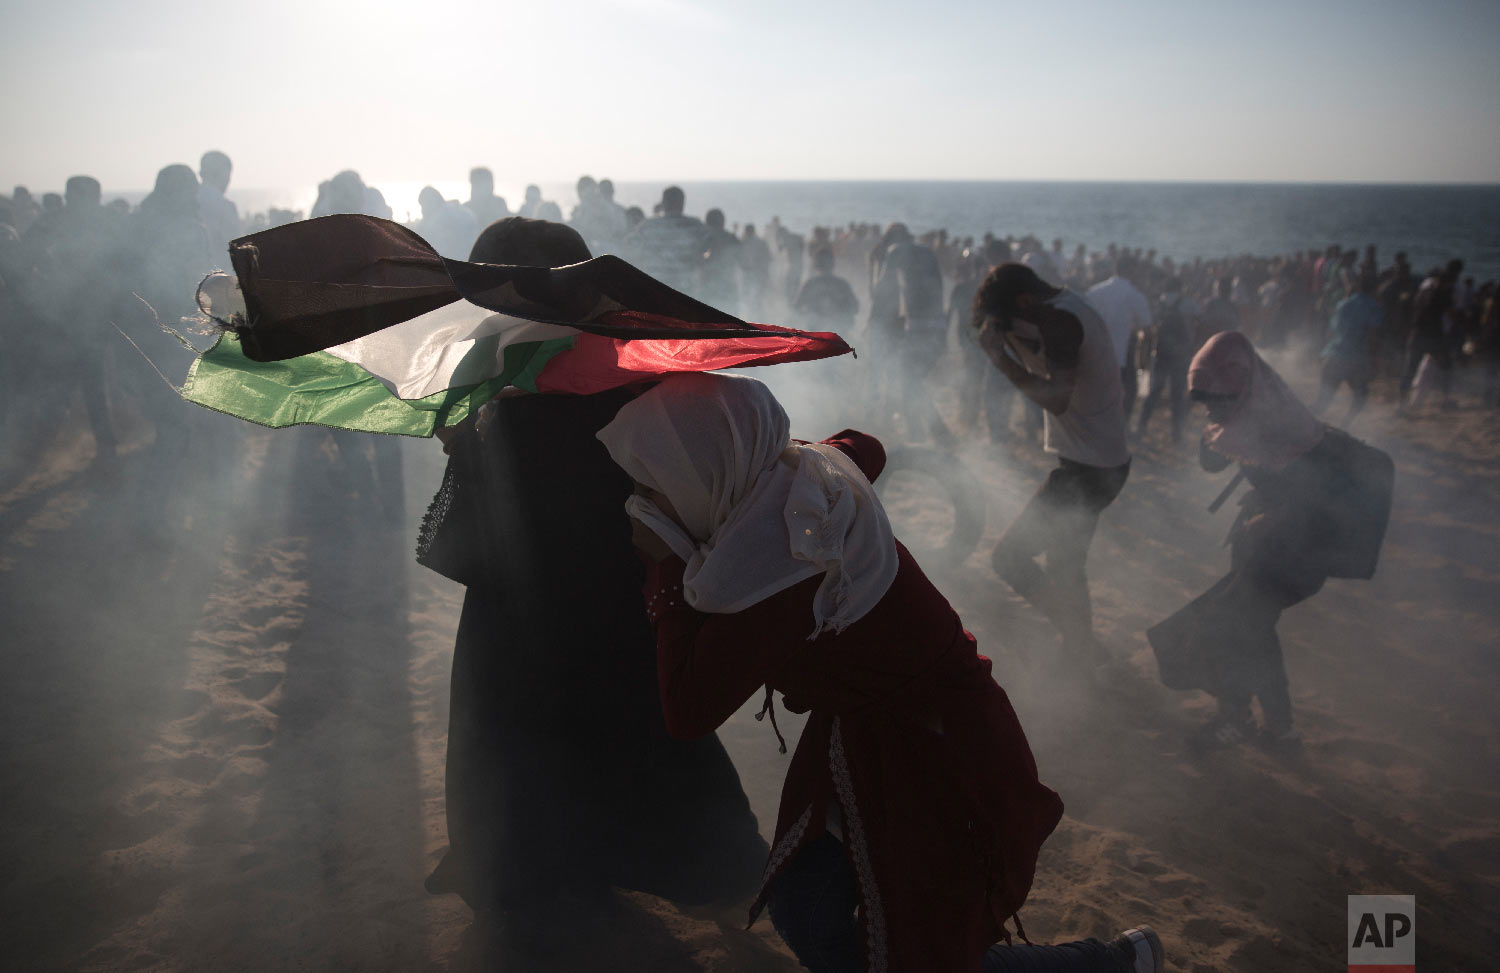 Palestinian protesters run for cover from teargas fired by Israeli soldiers during a protest on the beach at the border with Israel near Beit Lahiya, northern Gaza Strip, Sept. 24, 2018.(AP Photo/Khalil Hamra)